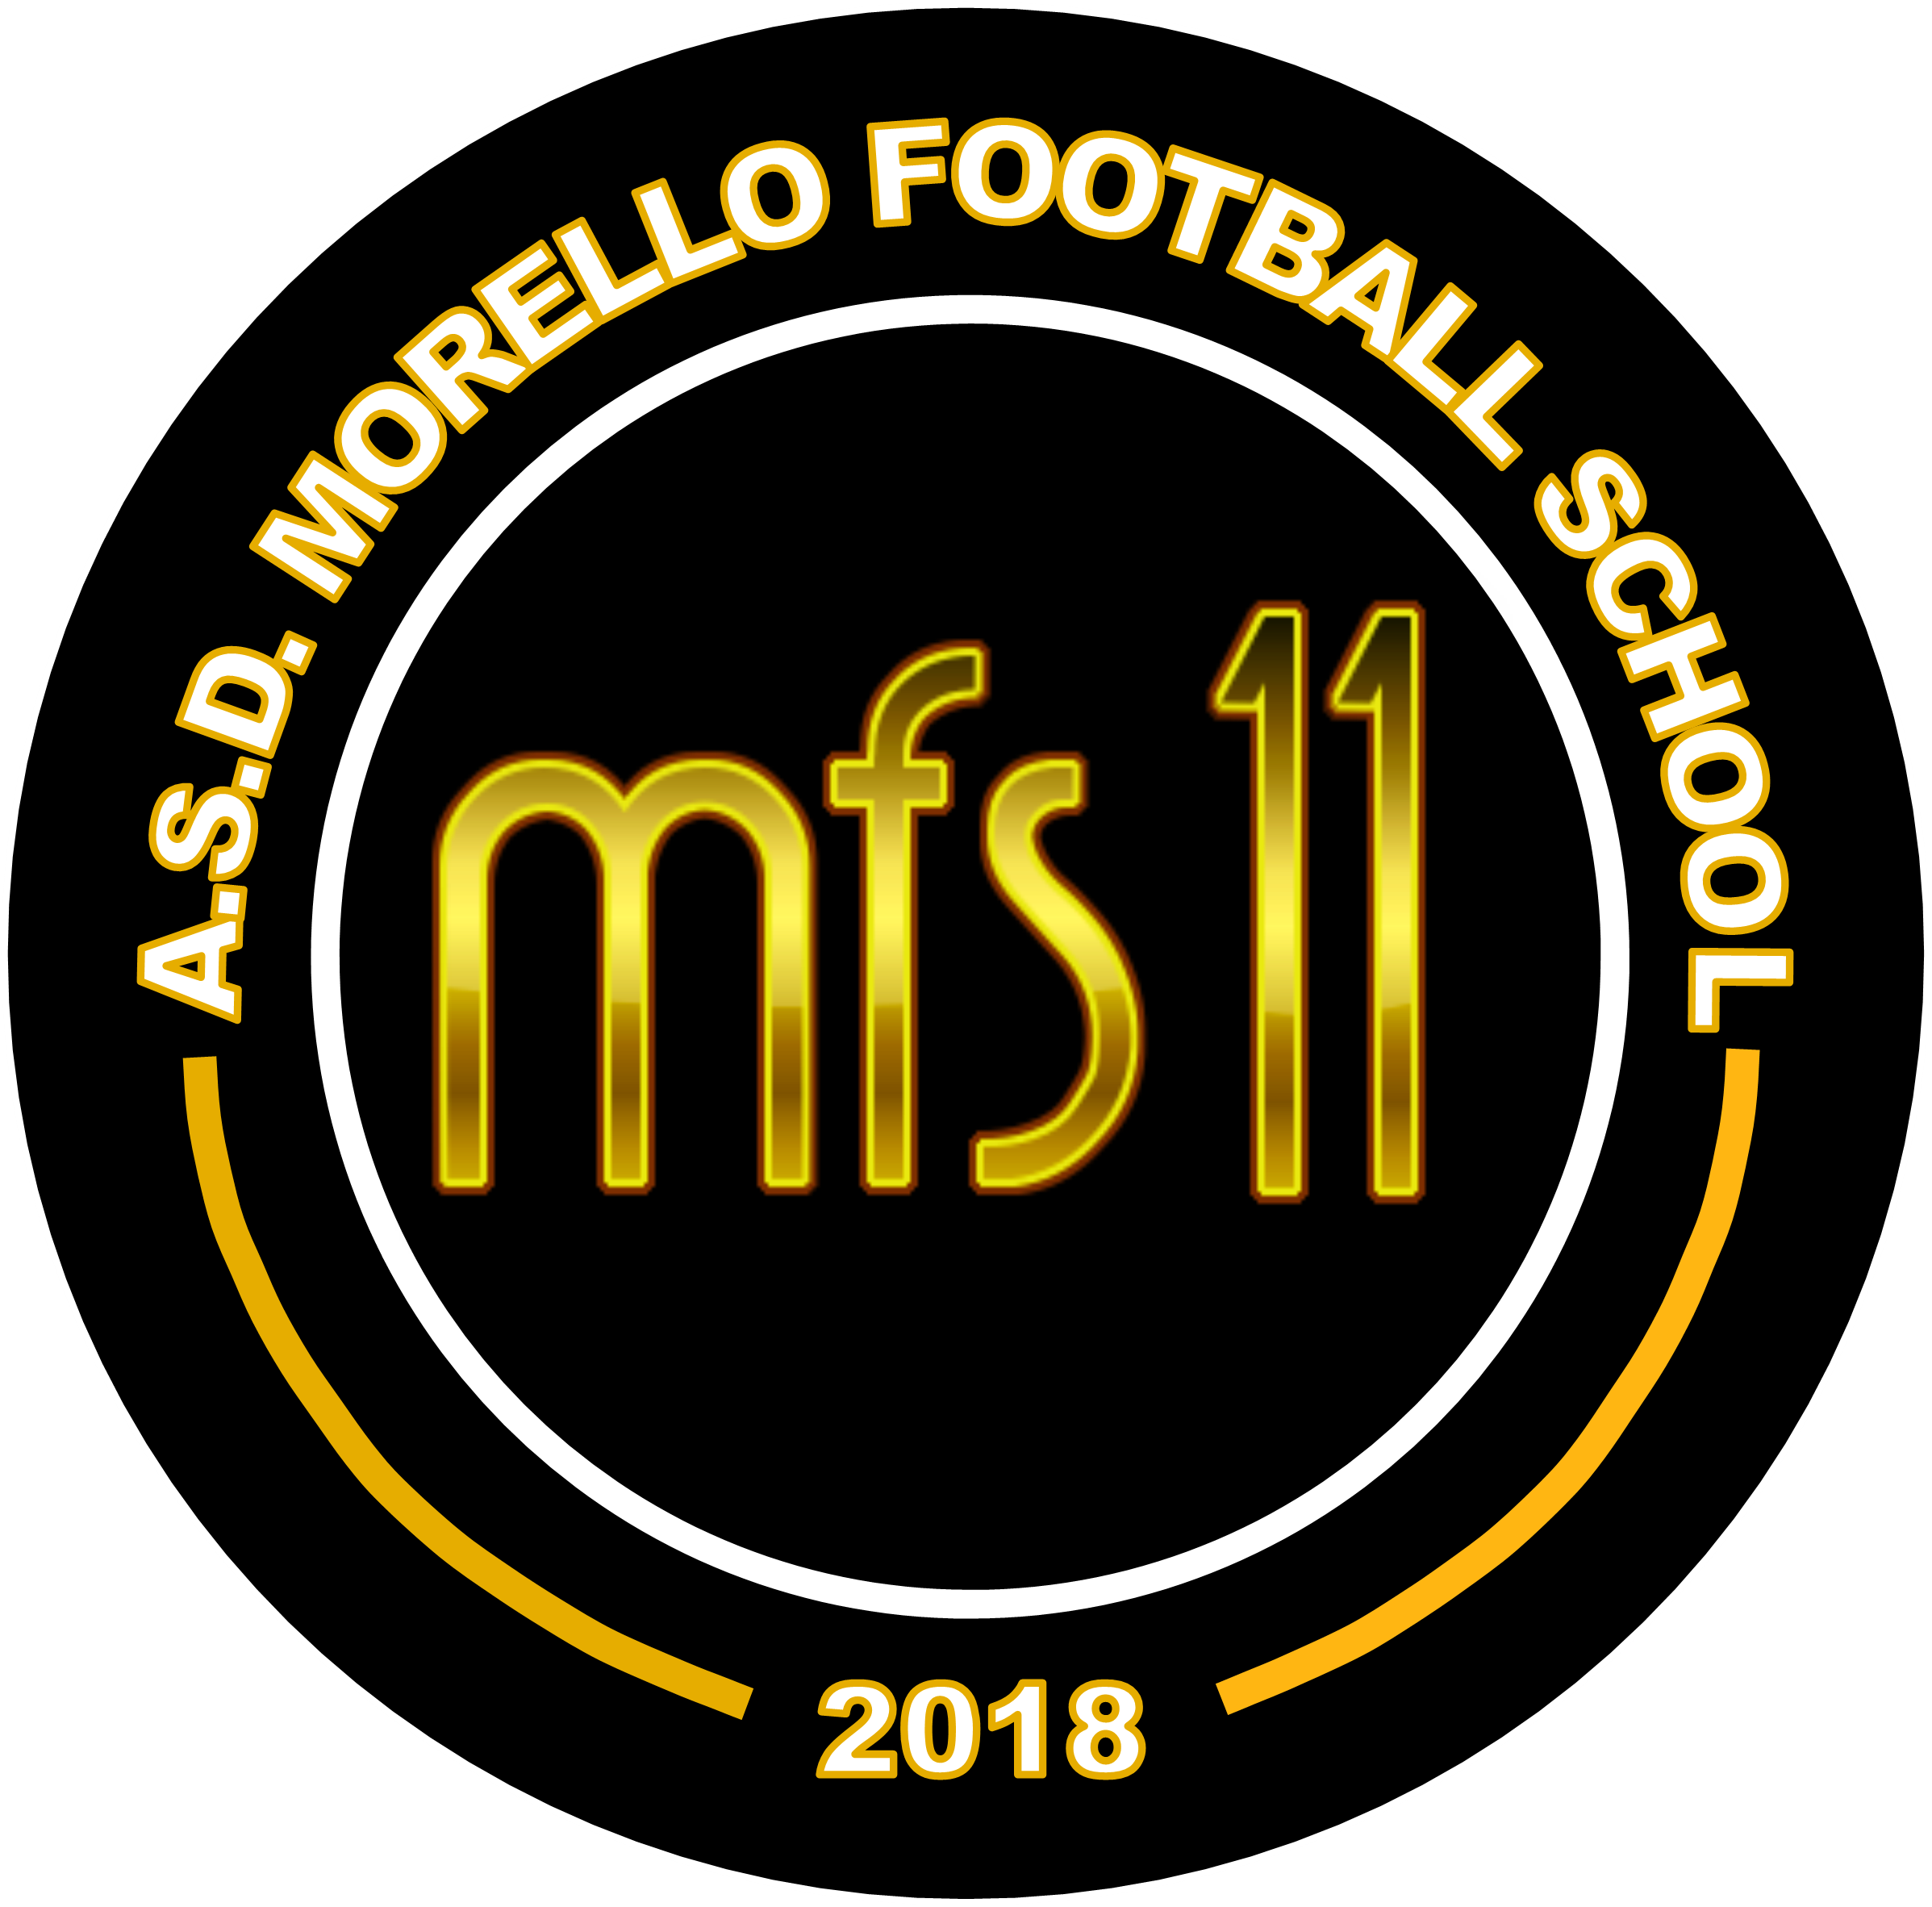 A.S.D. MORELLO FOOTBALL SCHOOL